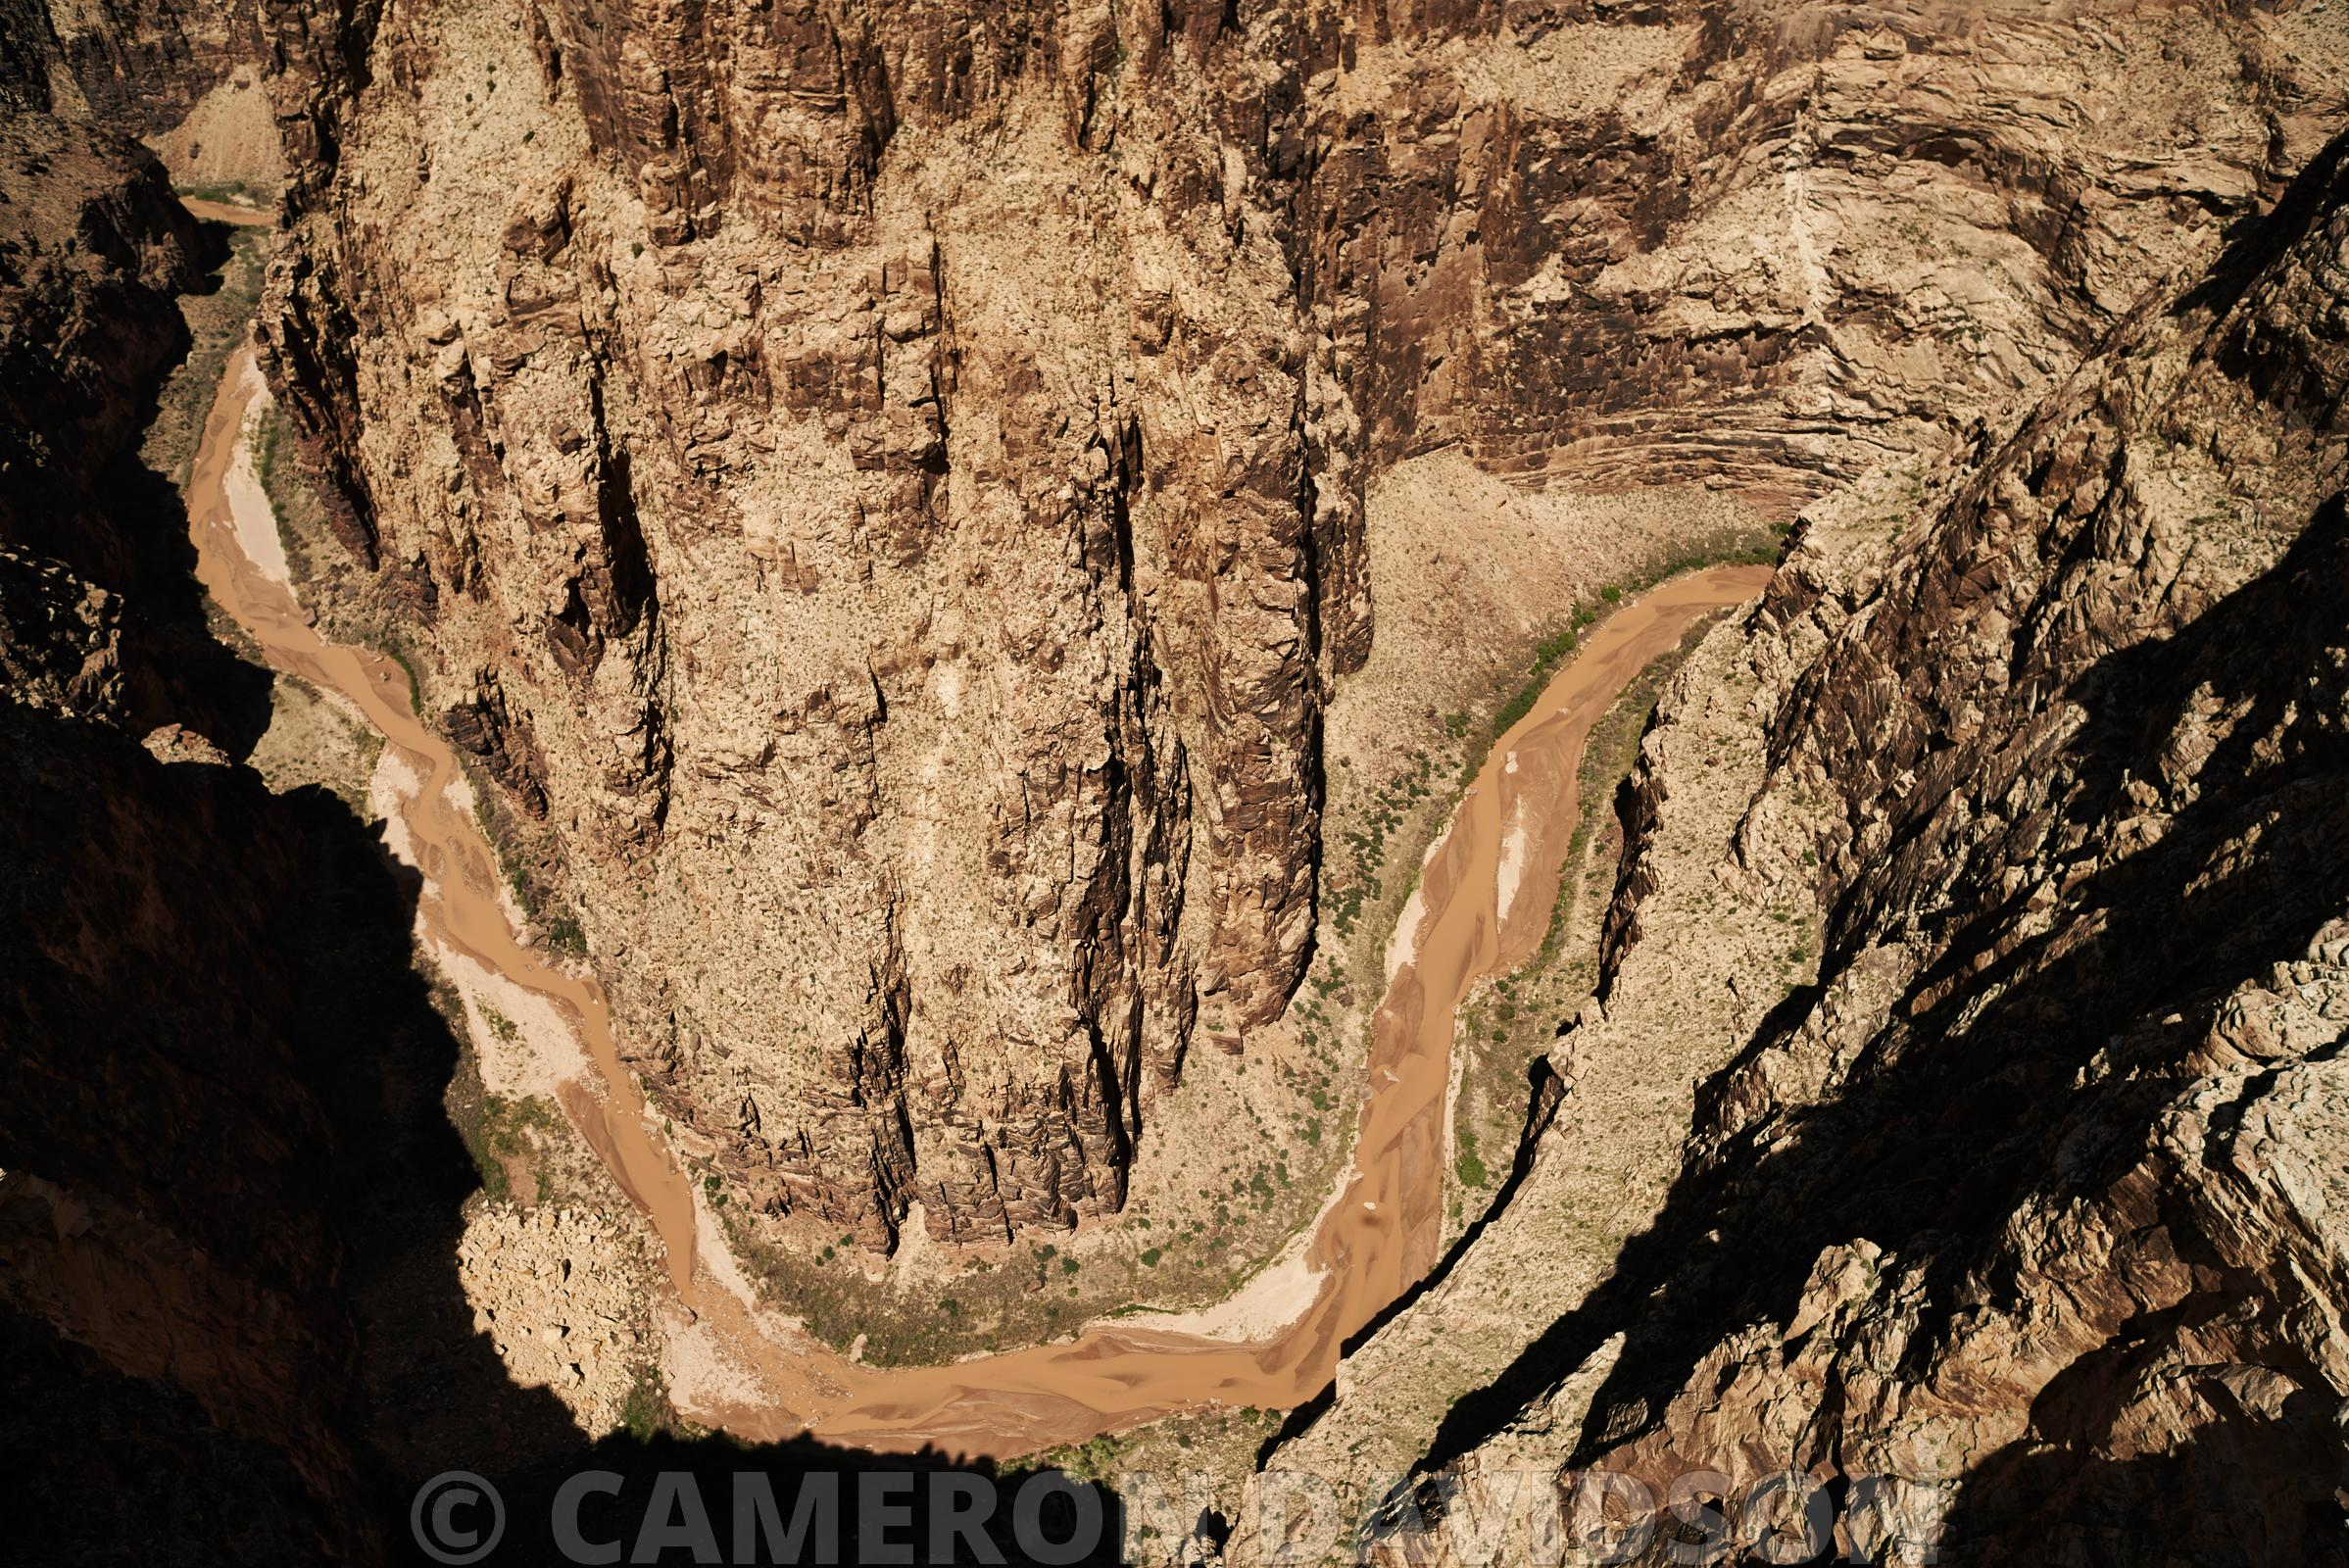 Aerial photograph of the Little Colorado River on the Navajo Reservation in Arizona